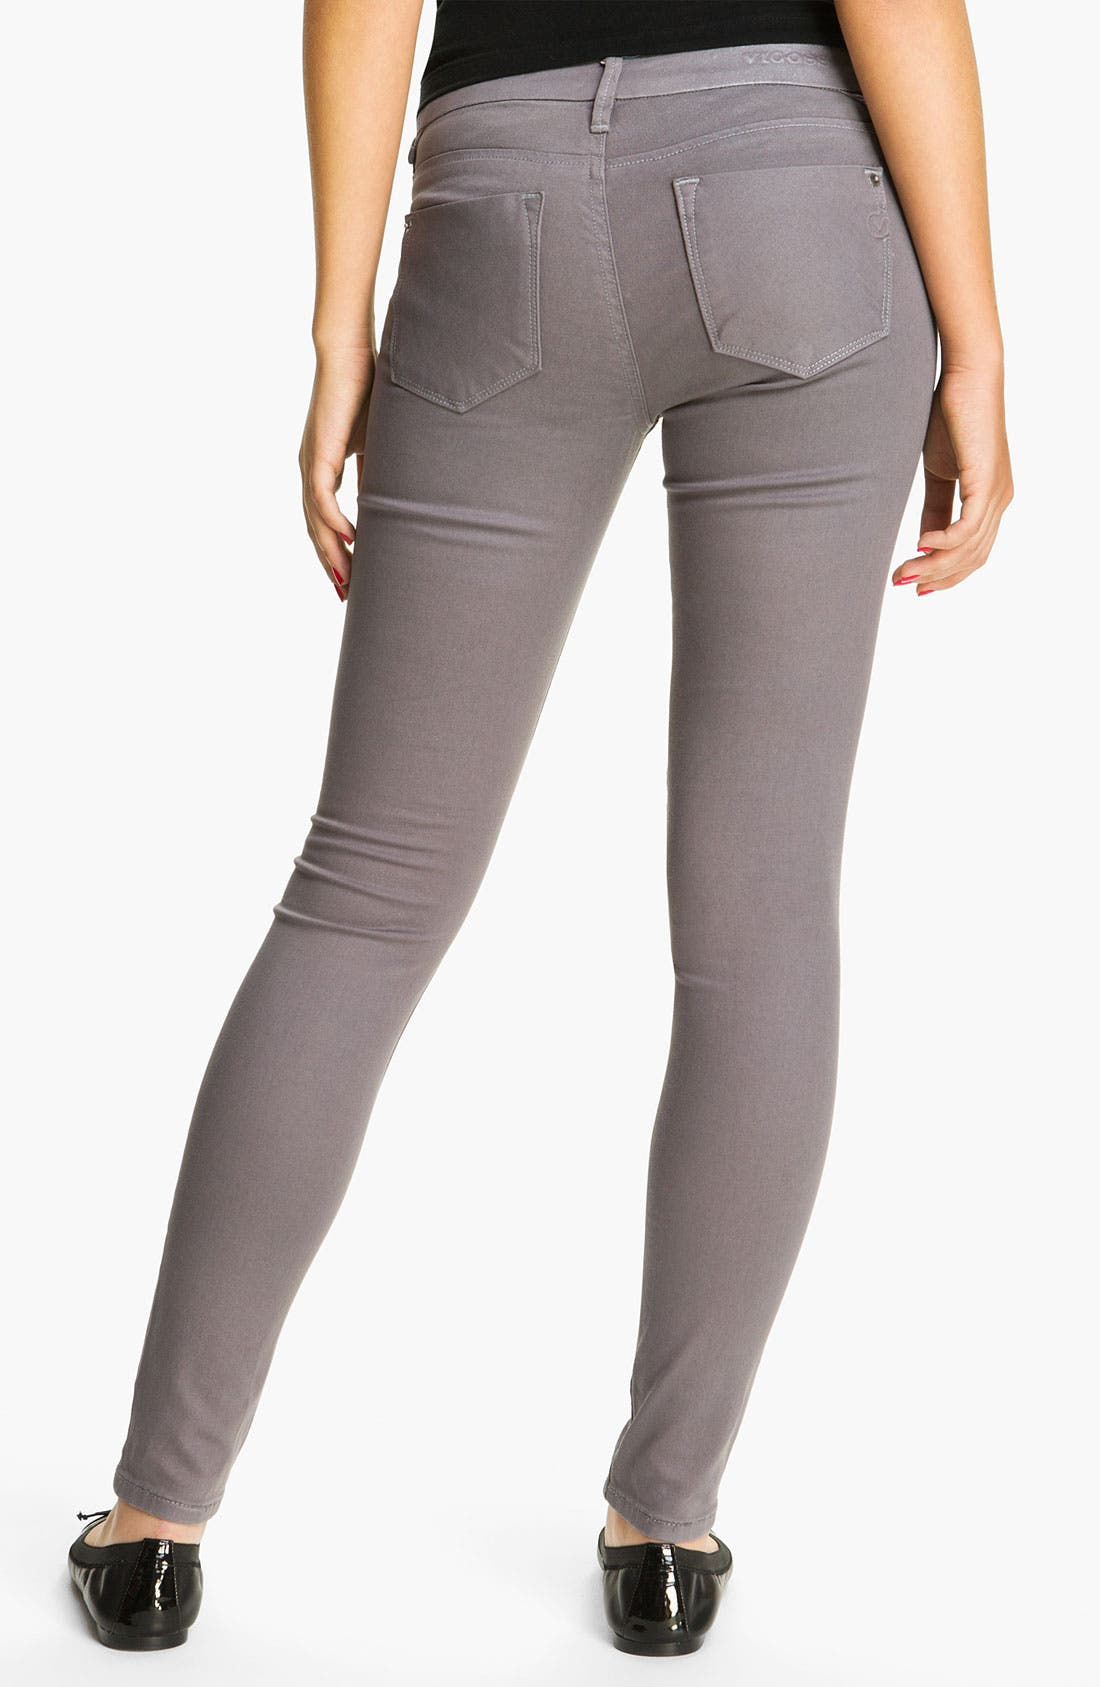 Alternate Image 1 Selected - Vigoss Coated Skinny Jeans (Grey) (Juniors)